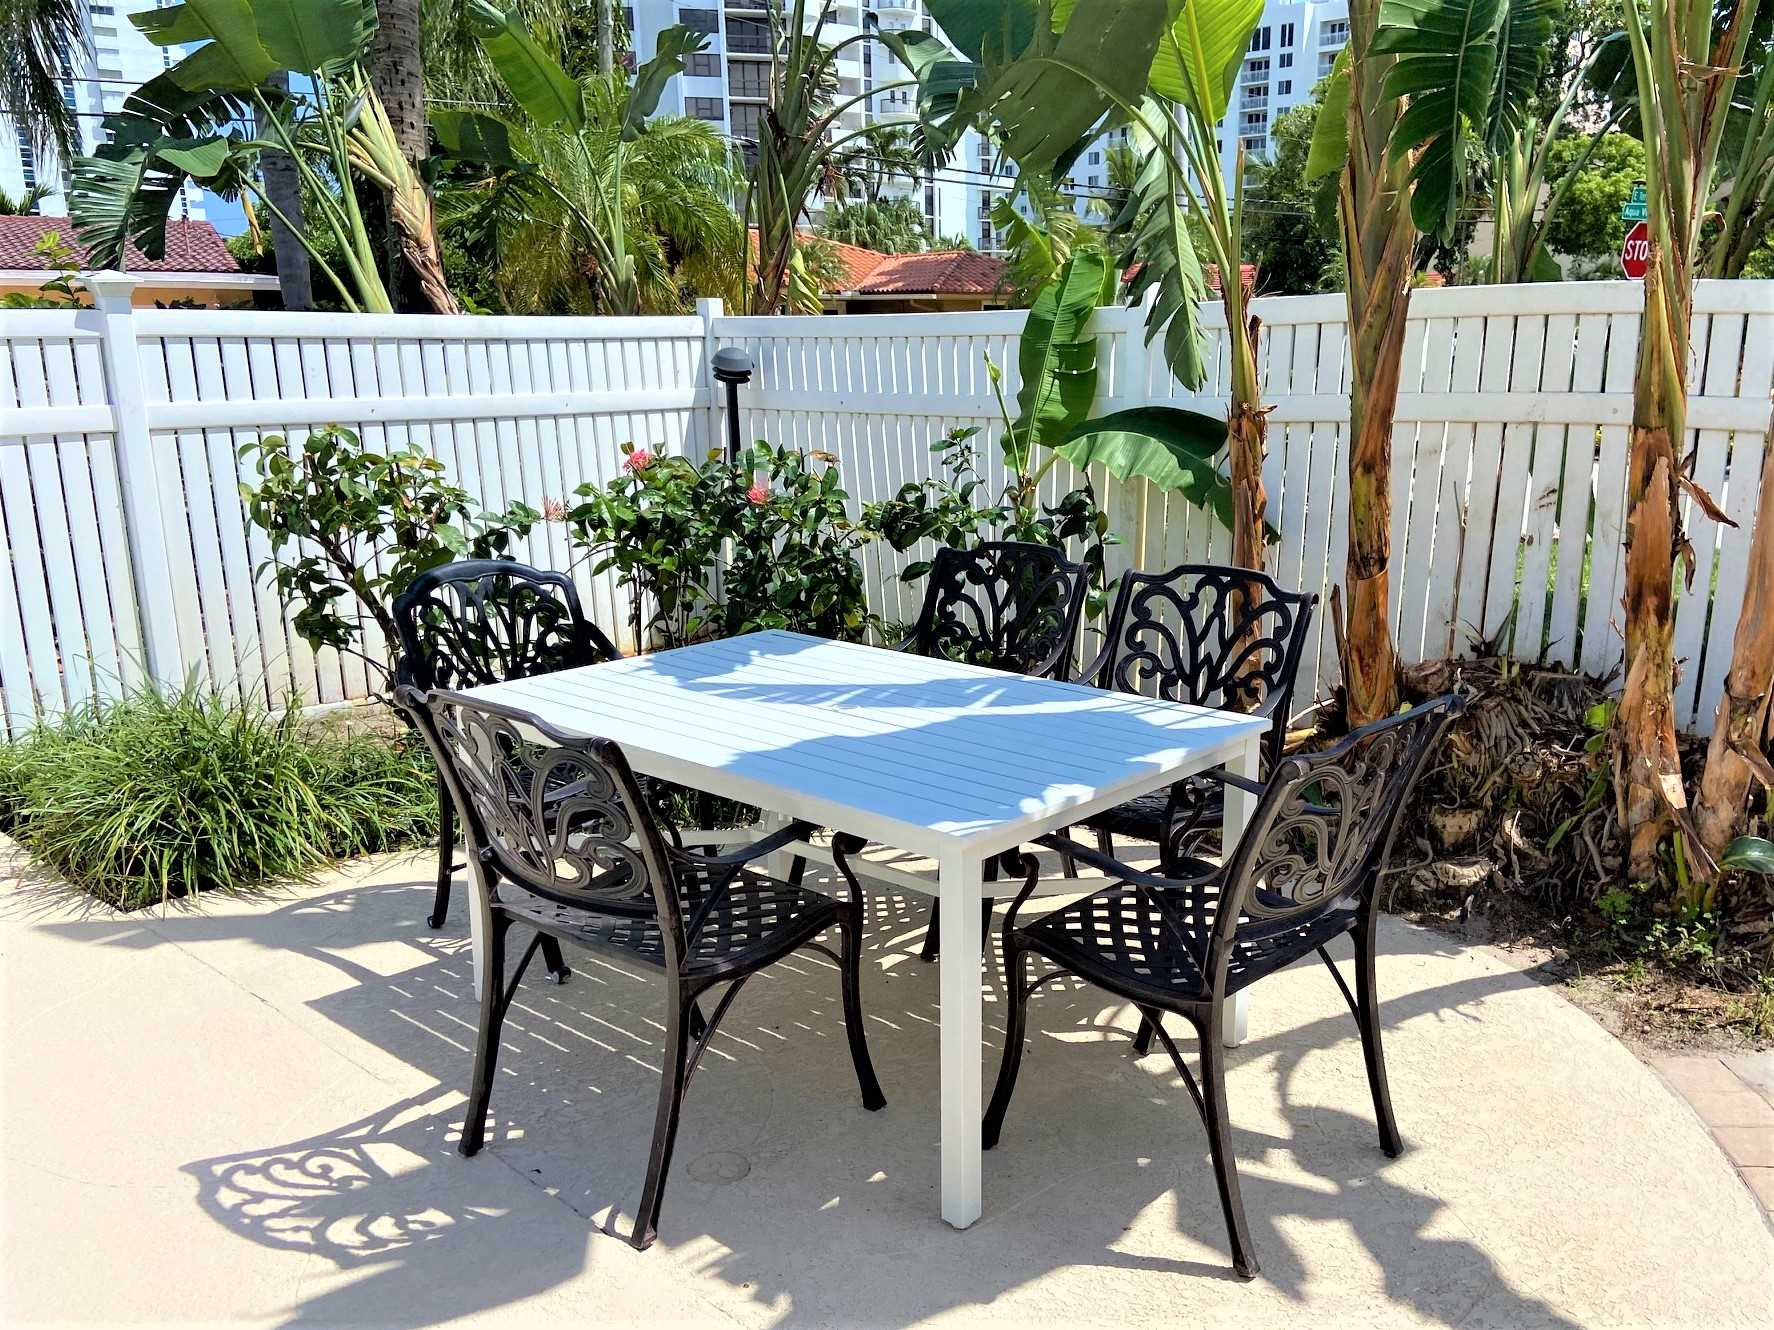 Dine poolside in the south Florida lifestyle.